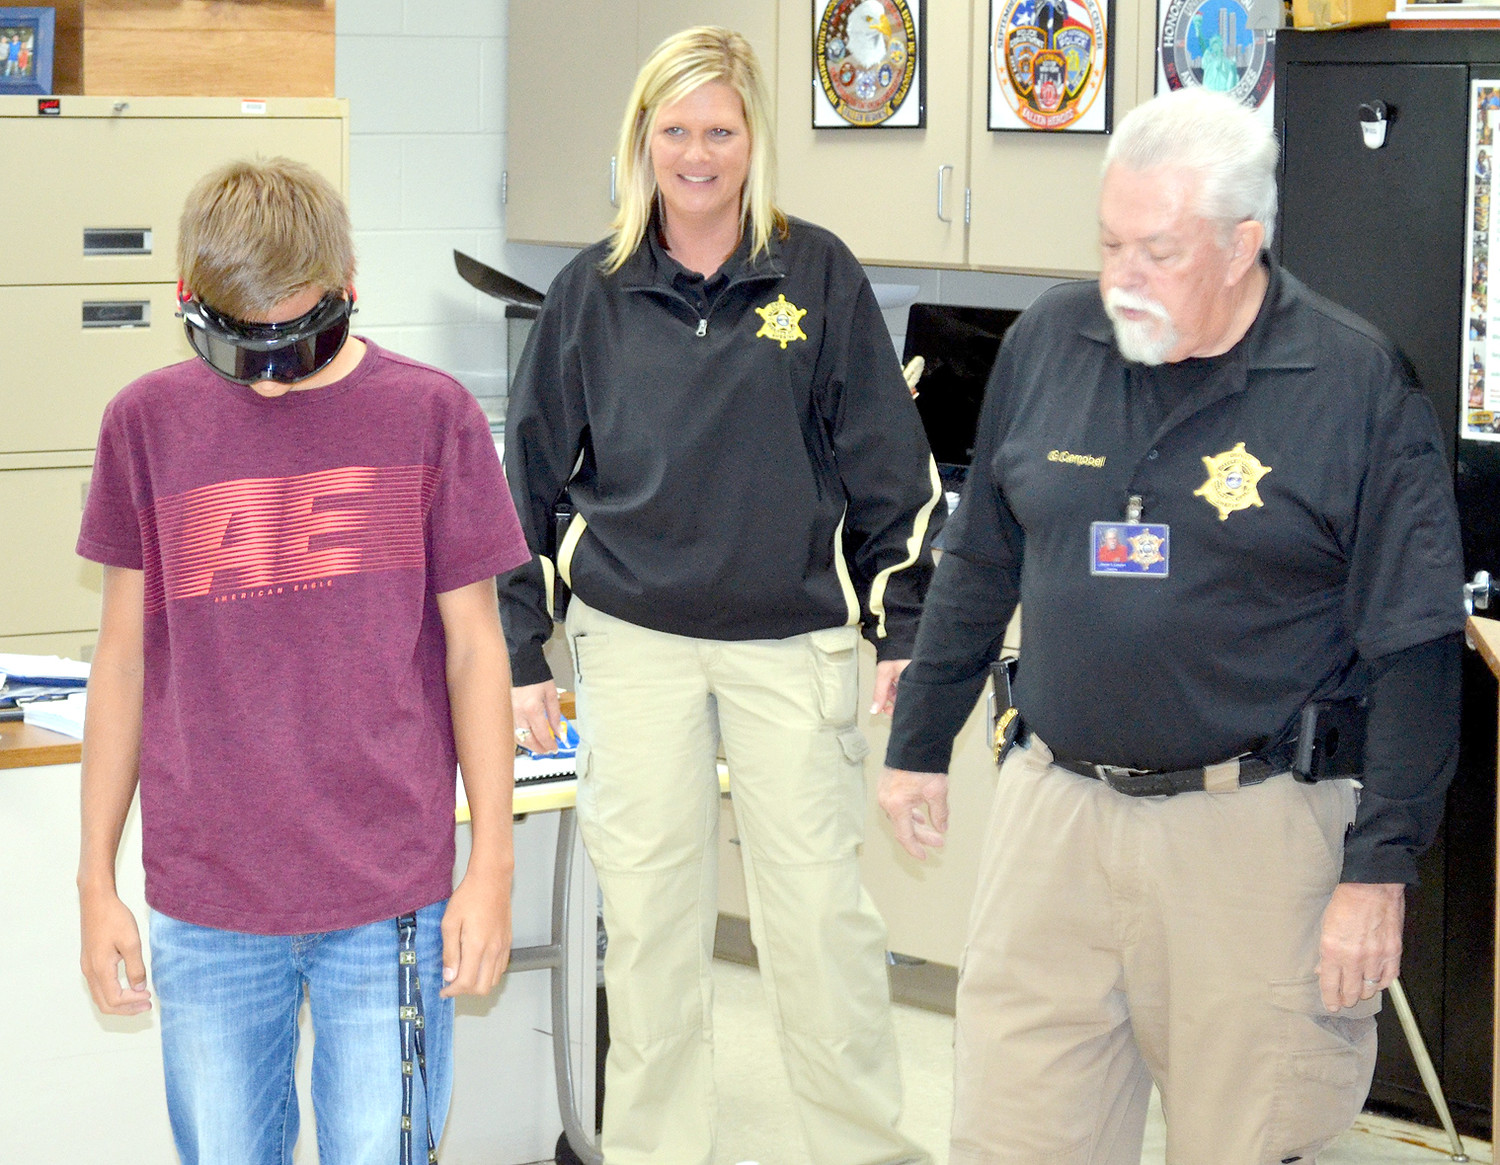 A Walker Valley High School student attempts the one leg stand field sobriety test with Lt. Julie Quinn, center, and Deputy George Campbell.